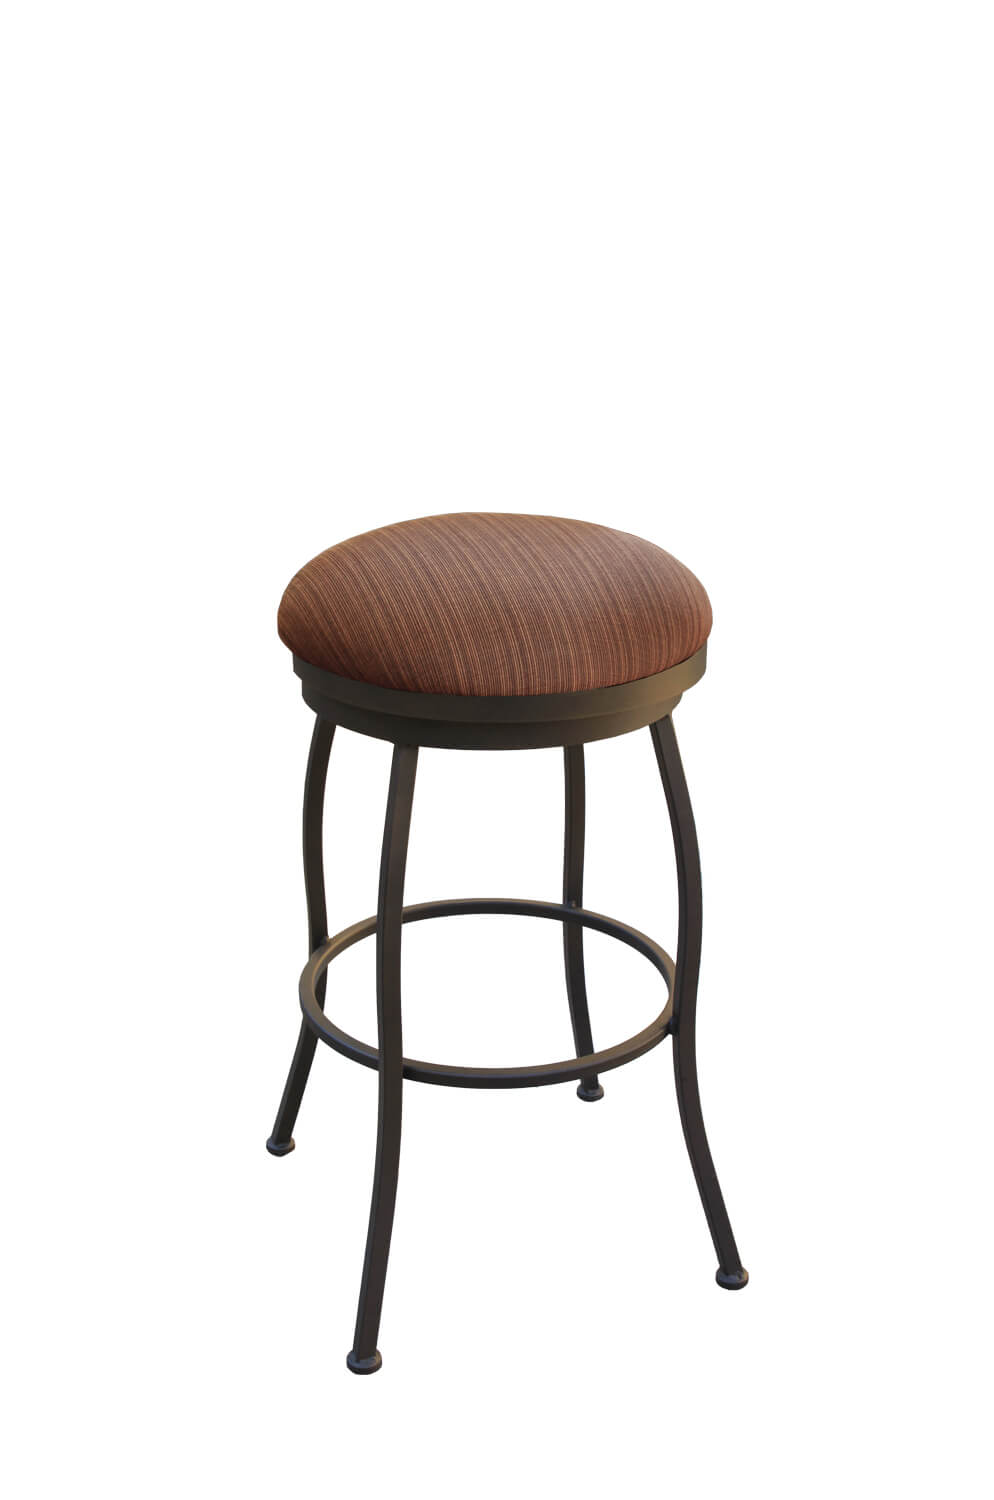 Sensational Bristol Outdoor Backless Swivel Stool Gmtry Best Dining Table And Chair Ideas Images Gmtryco